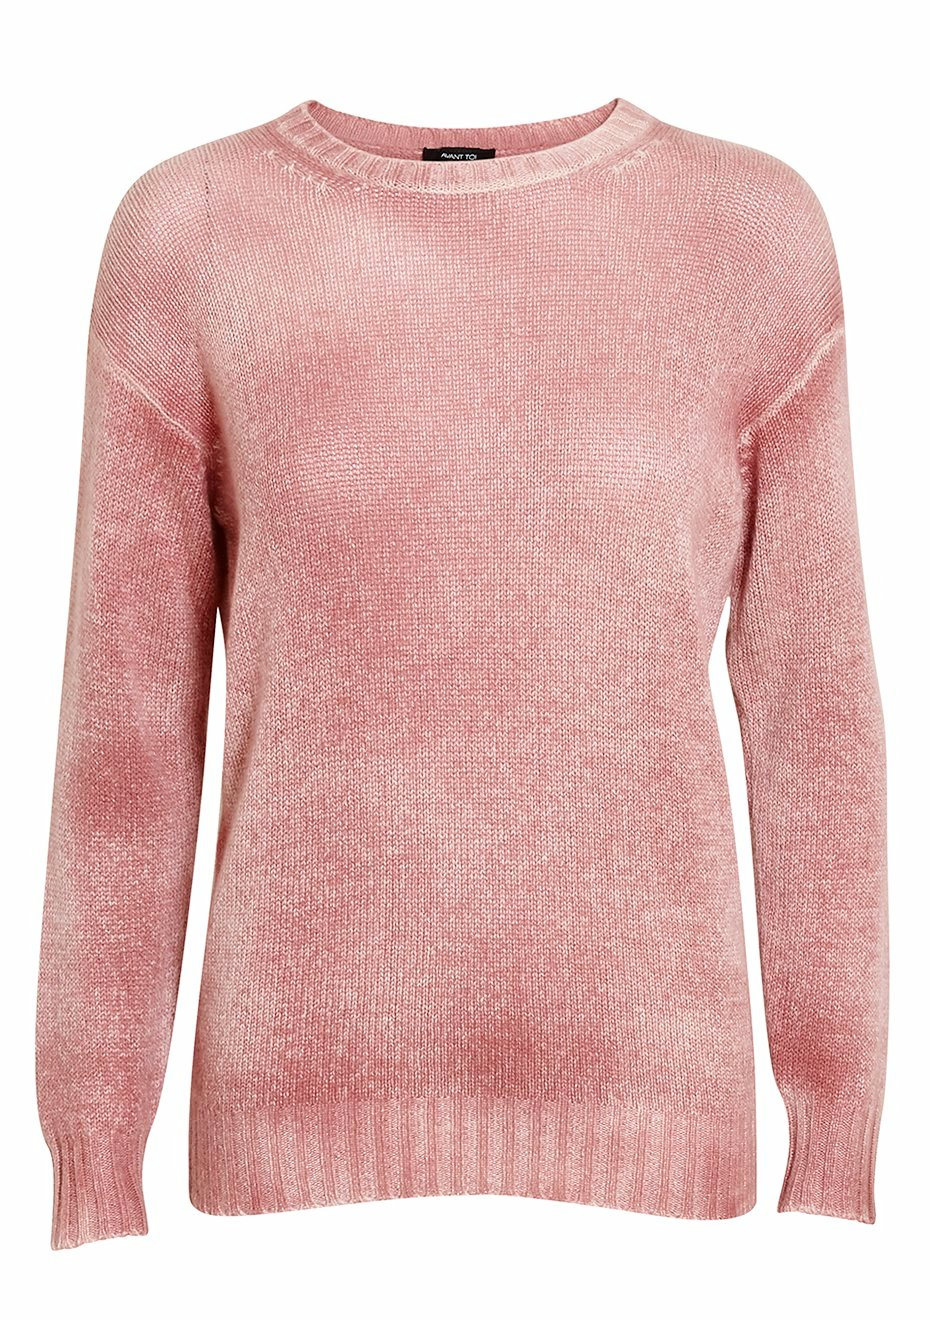 Rose Cashmere Sweater